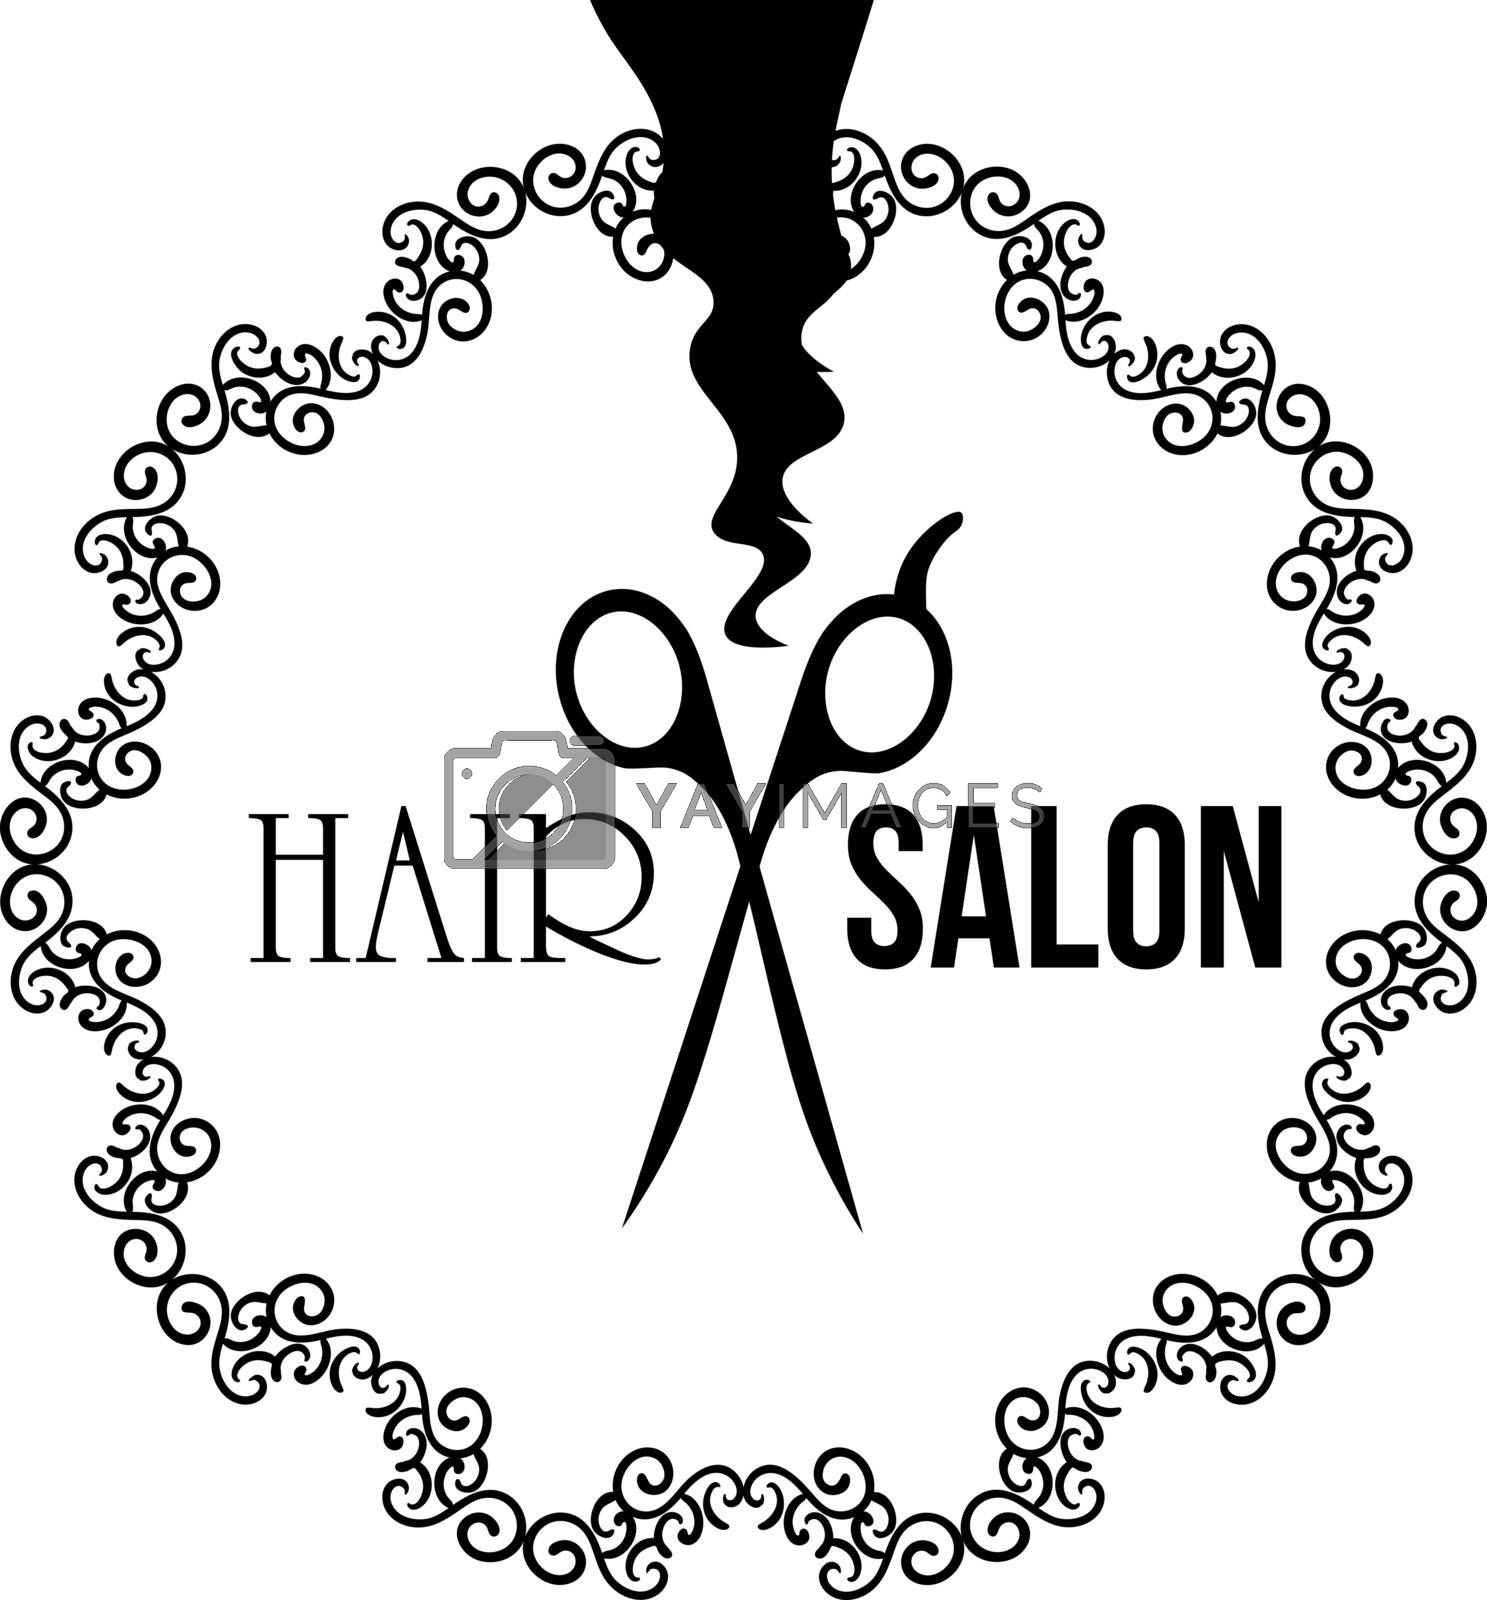 Sign or emblem for hair salon with strand of hair and scissors in ornamented frame